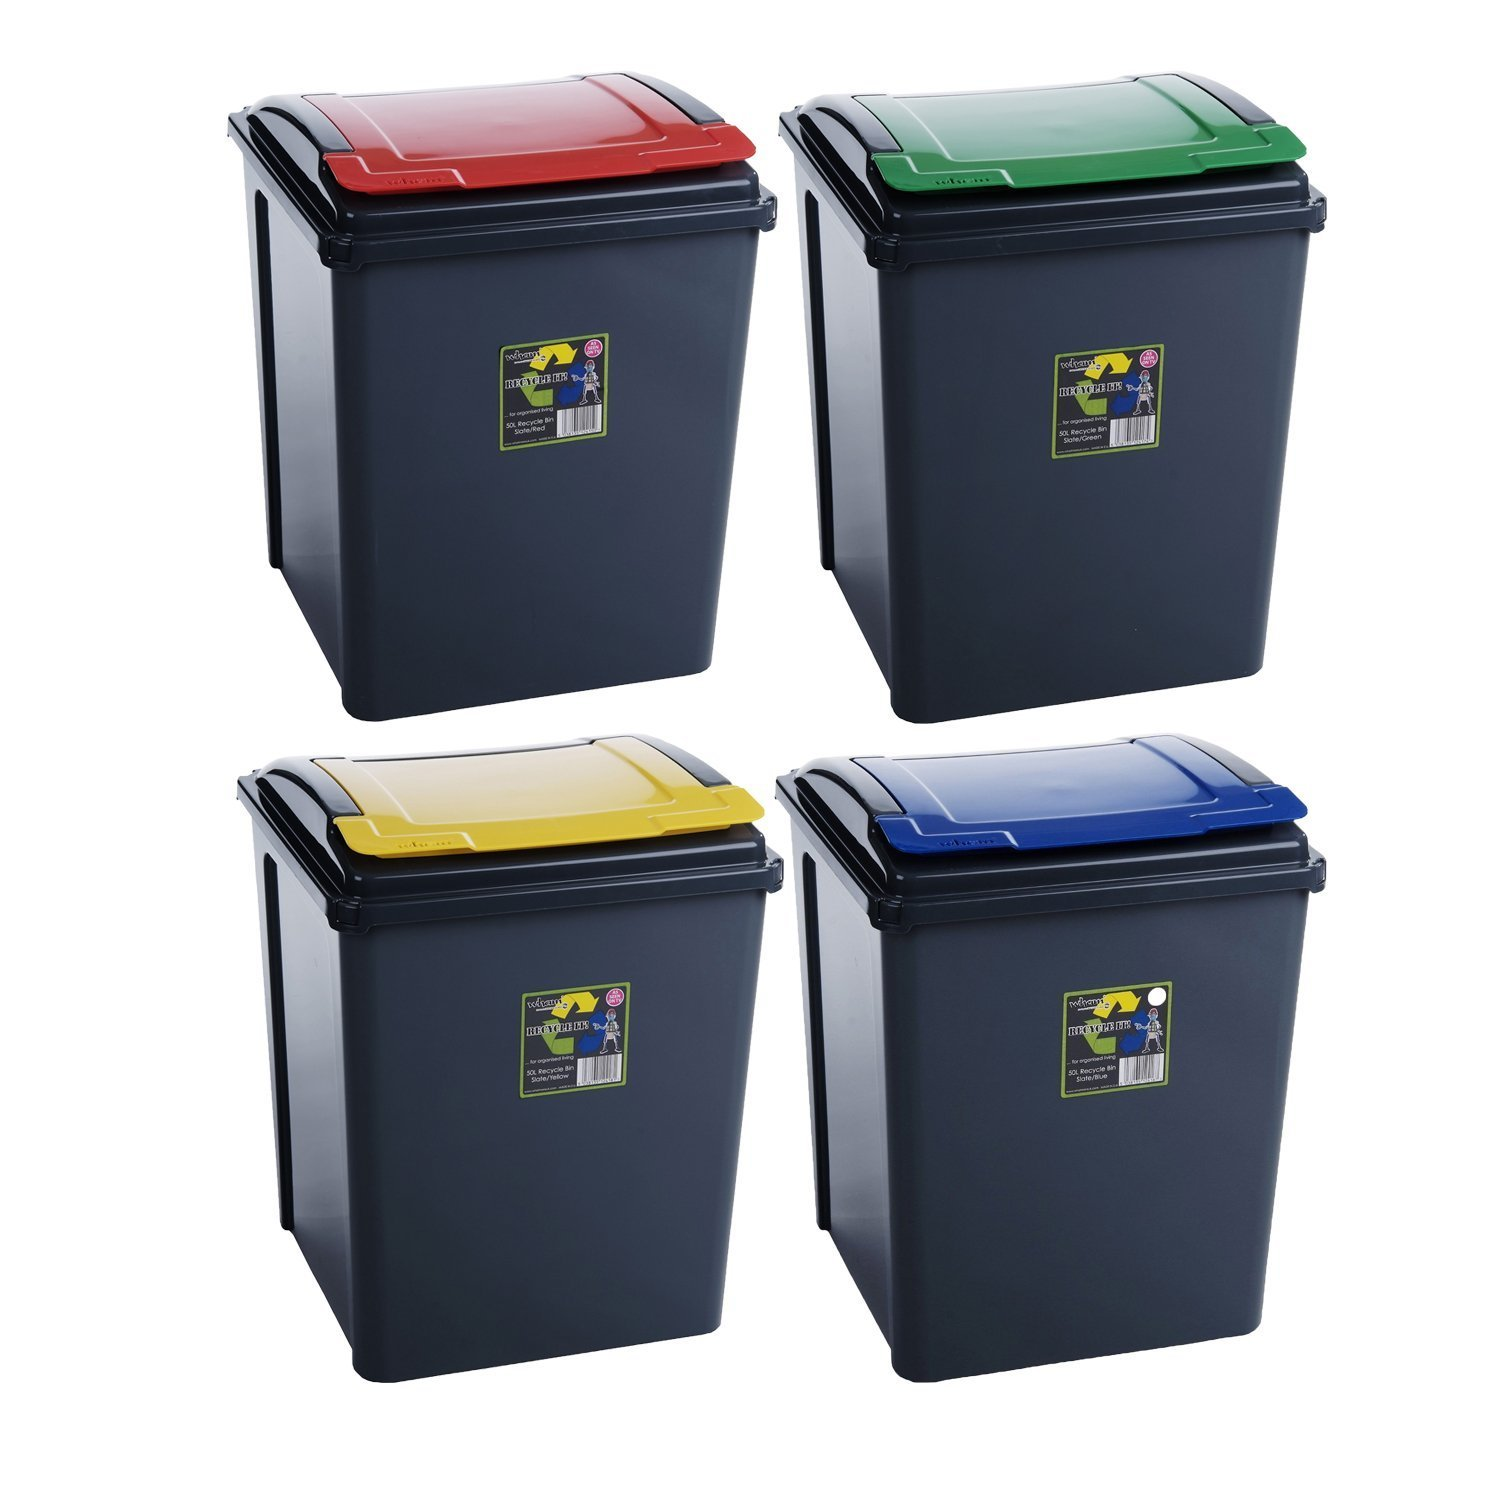 funky gadgets 50L Pack Of 4 Recycle Bin (Red/Green/Blue/Yellow) Waste Rubbish Refuse Trash Storage Recycling Bins Kitchen Home Office Dustbin Pet Food Container